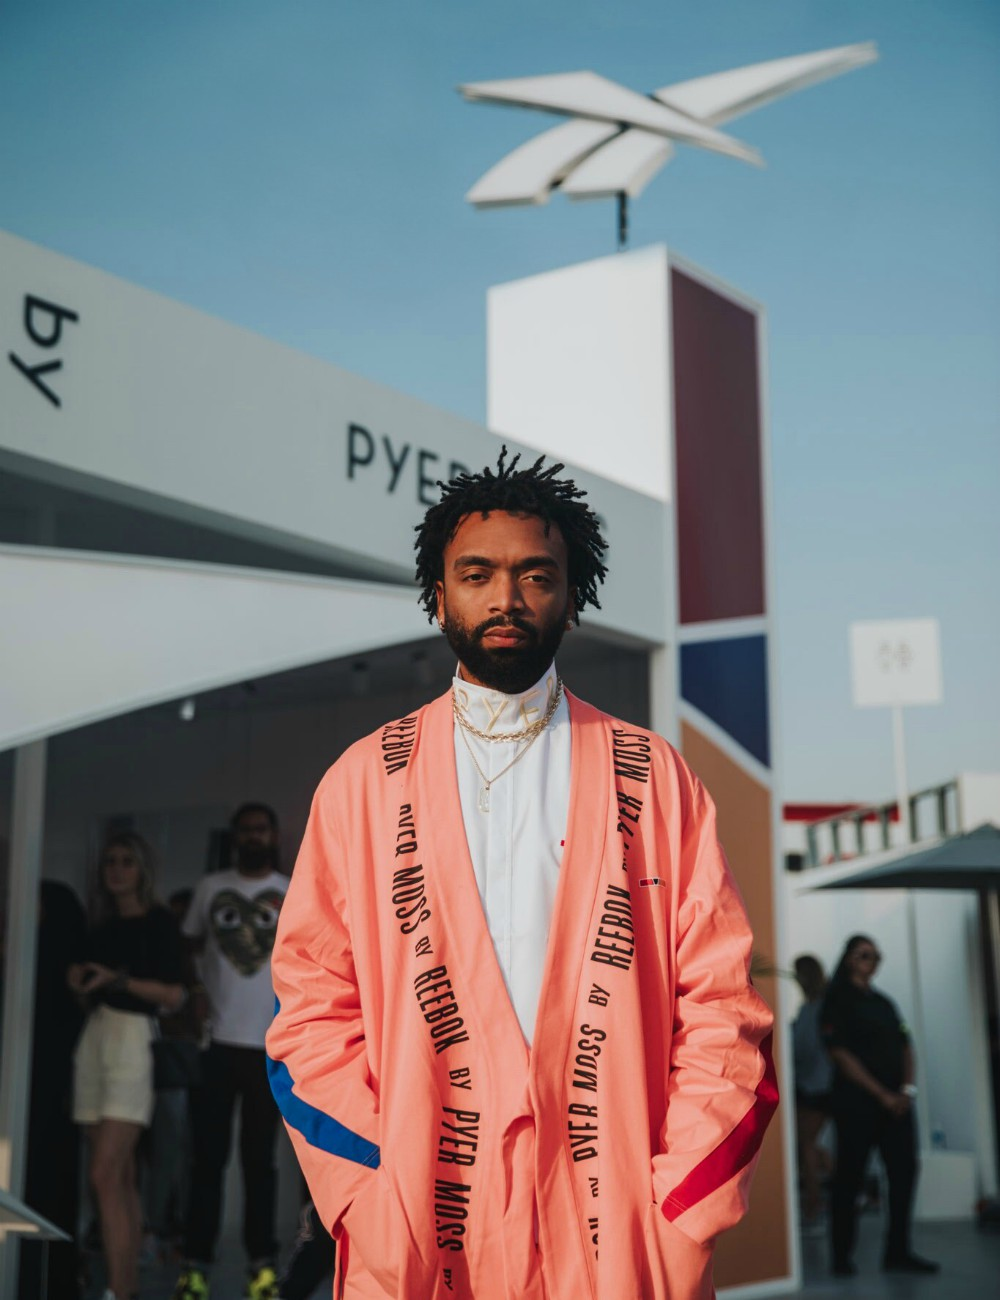 On Wednesday, athletic apparel and footwear giant Reebok announced Pyer Moss founder Kerby Jean-Raymond as its new creative director.